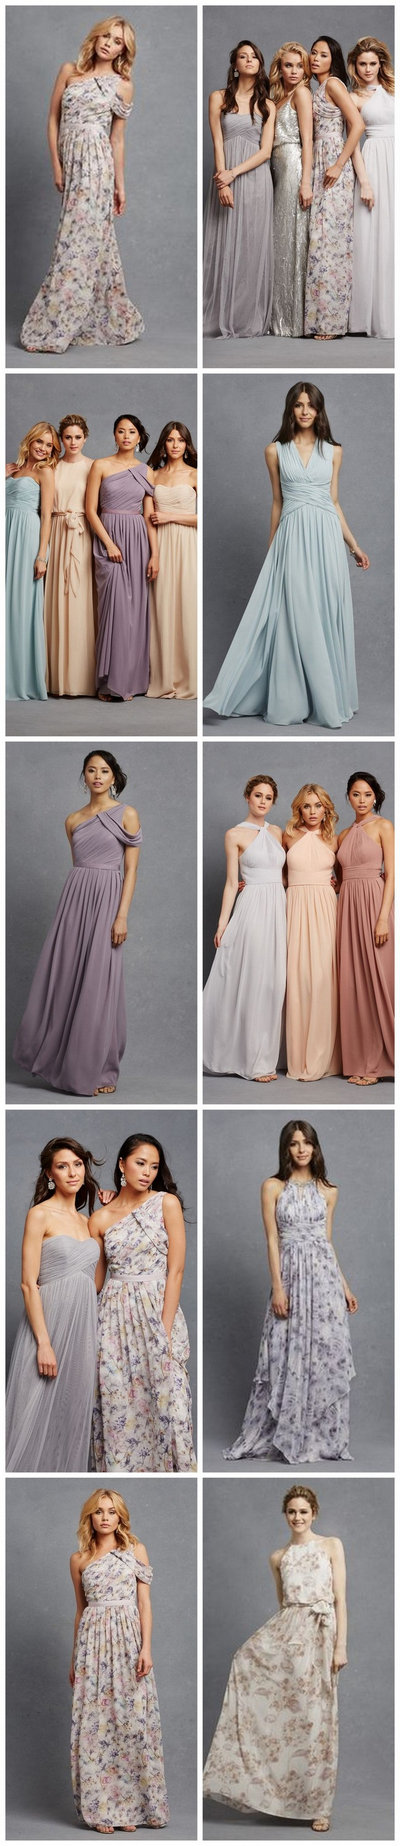 Romantic Floral Print and Boho bridesmaid dresses in so many gorgeous silhouettes and fabrics!